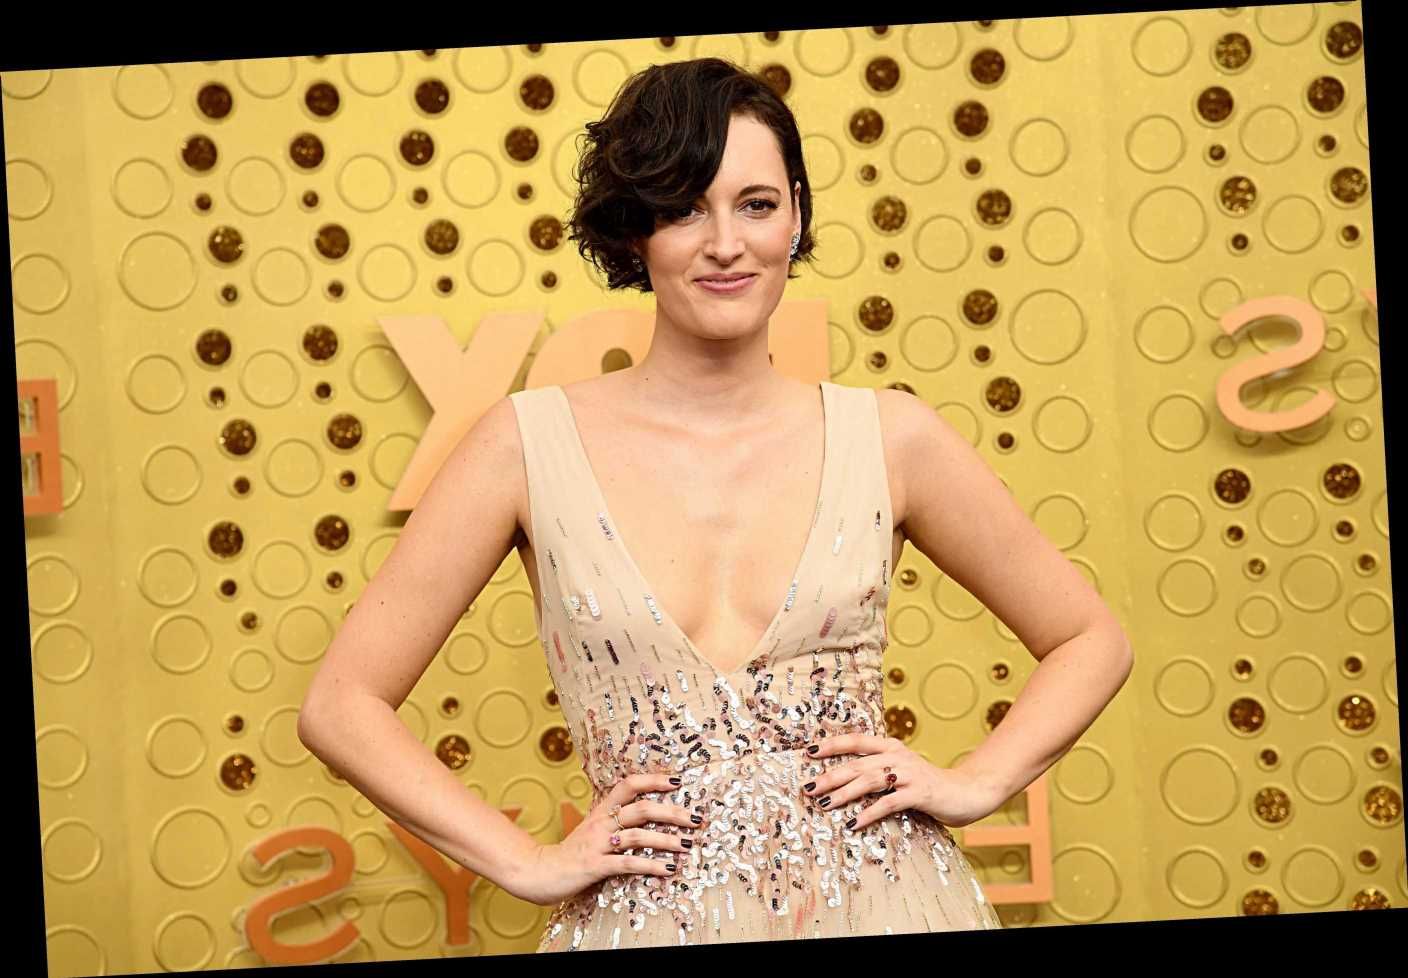 Phoebe Waller-Bridge-scripted Bond film franchise's longest at nearly 3 hours